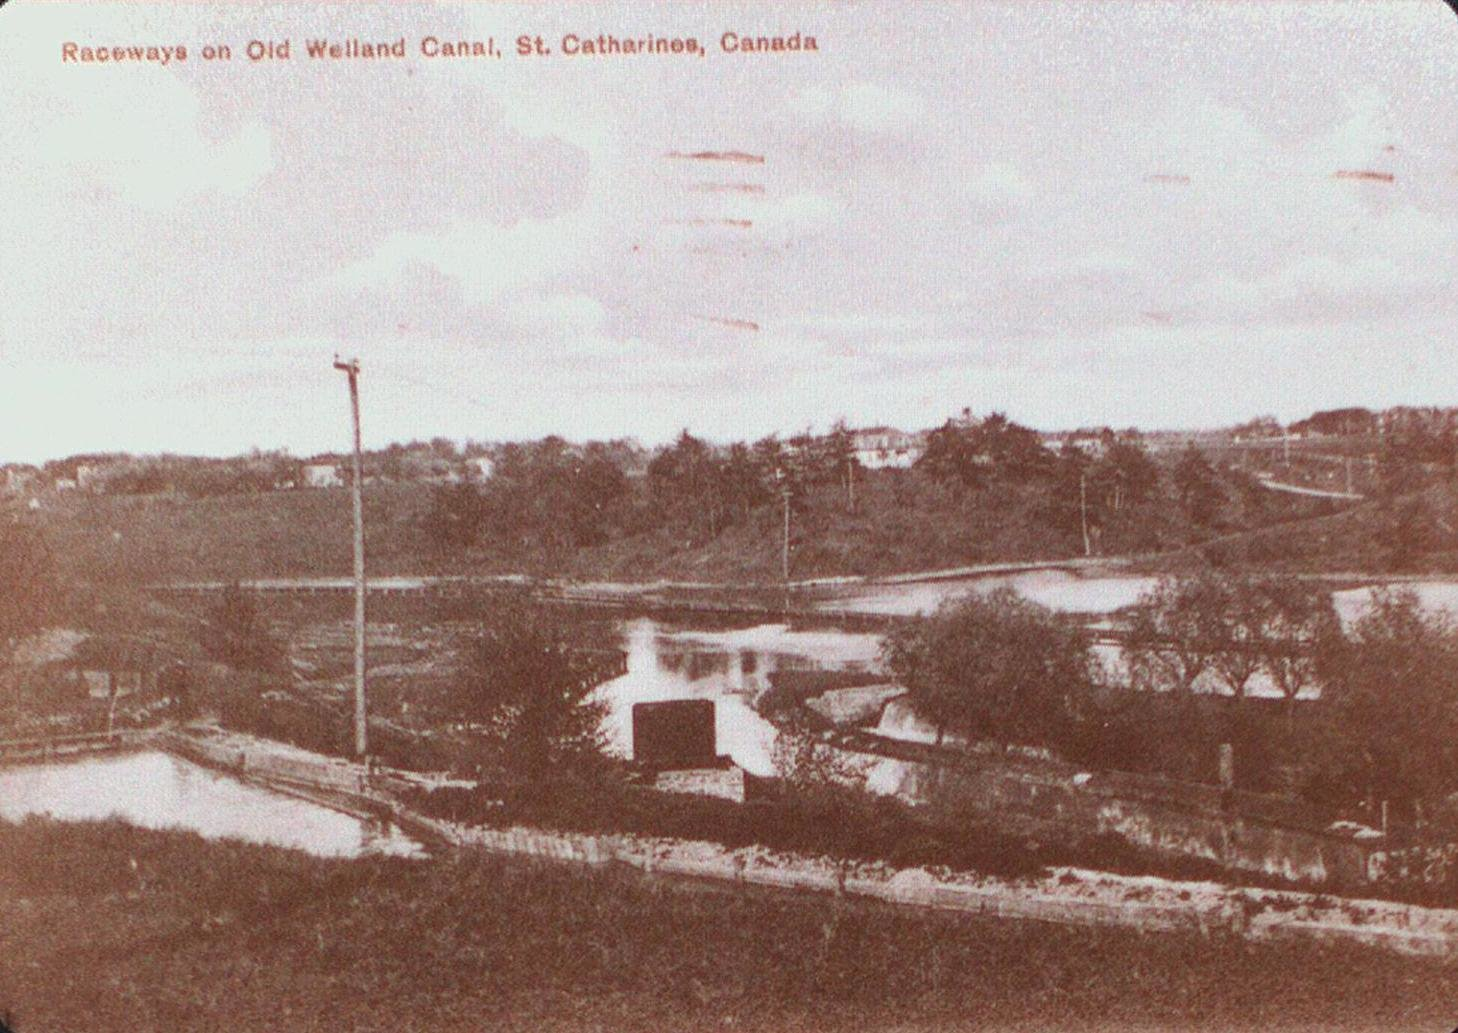 Raceways on the Old Welland Canal